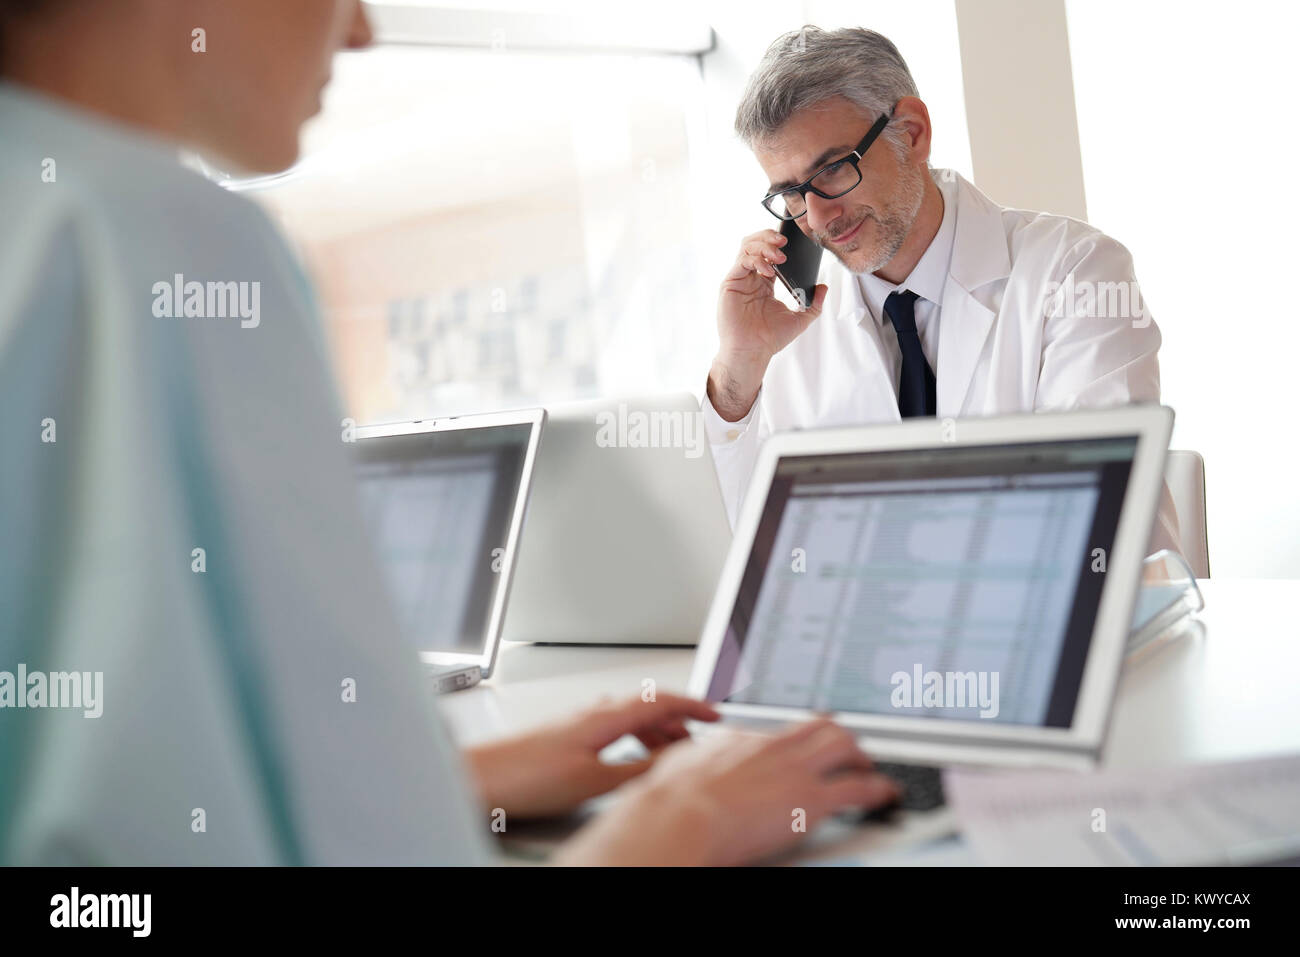 Mature doctor in office talking on phone - Stock Image